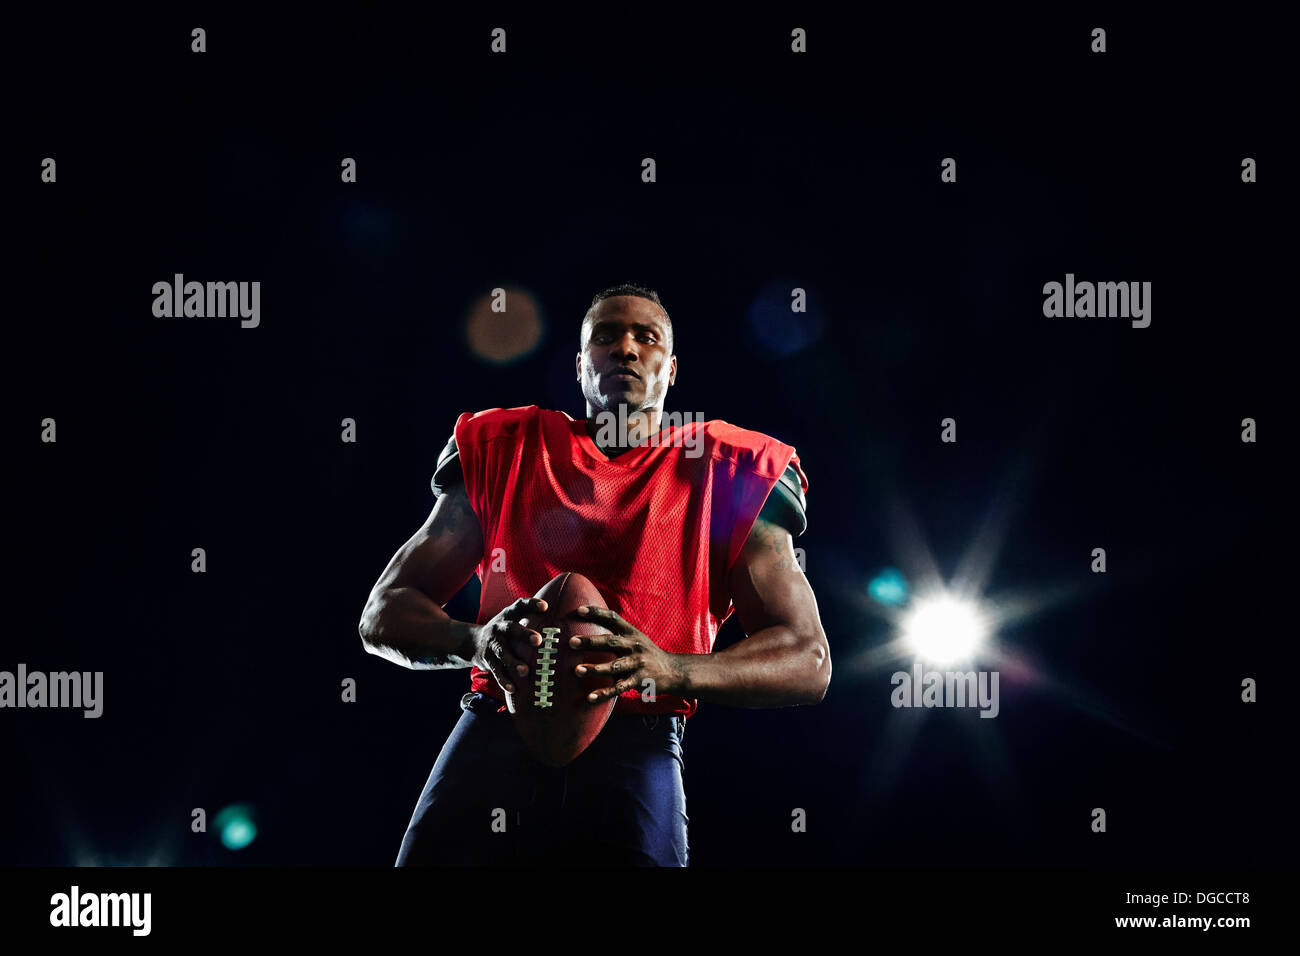 Portrait of american football player with ball - Stock Image